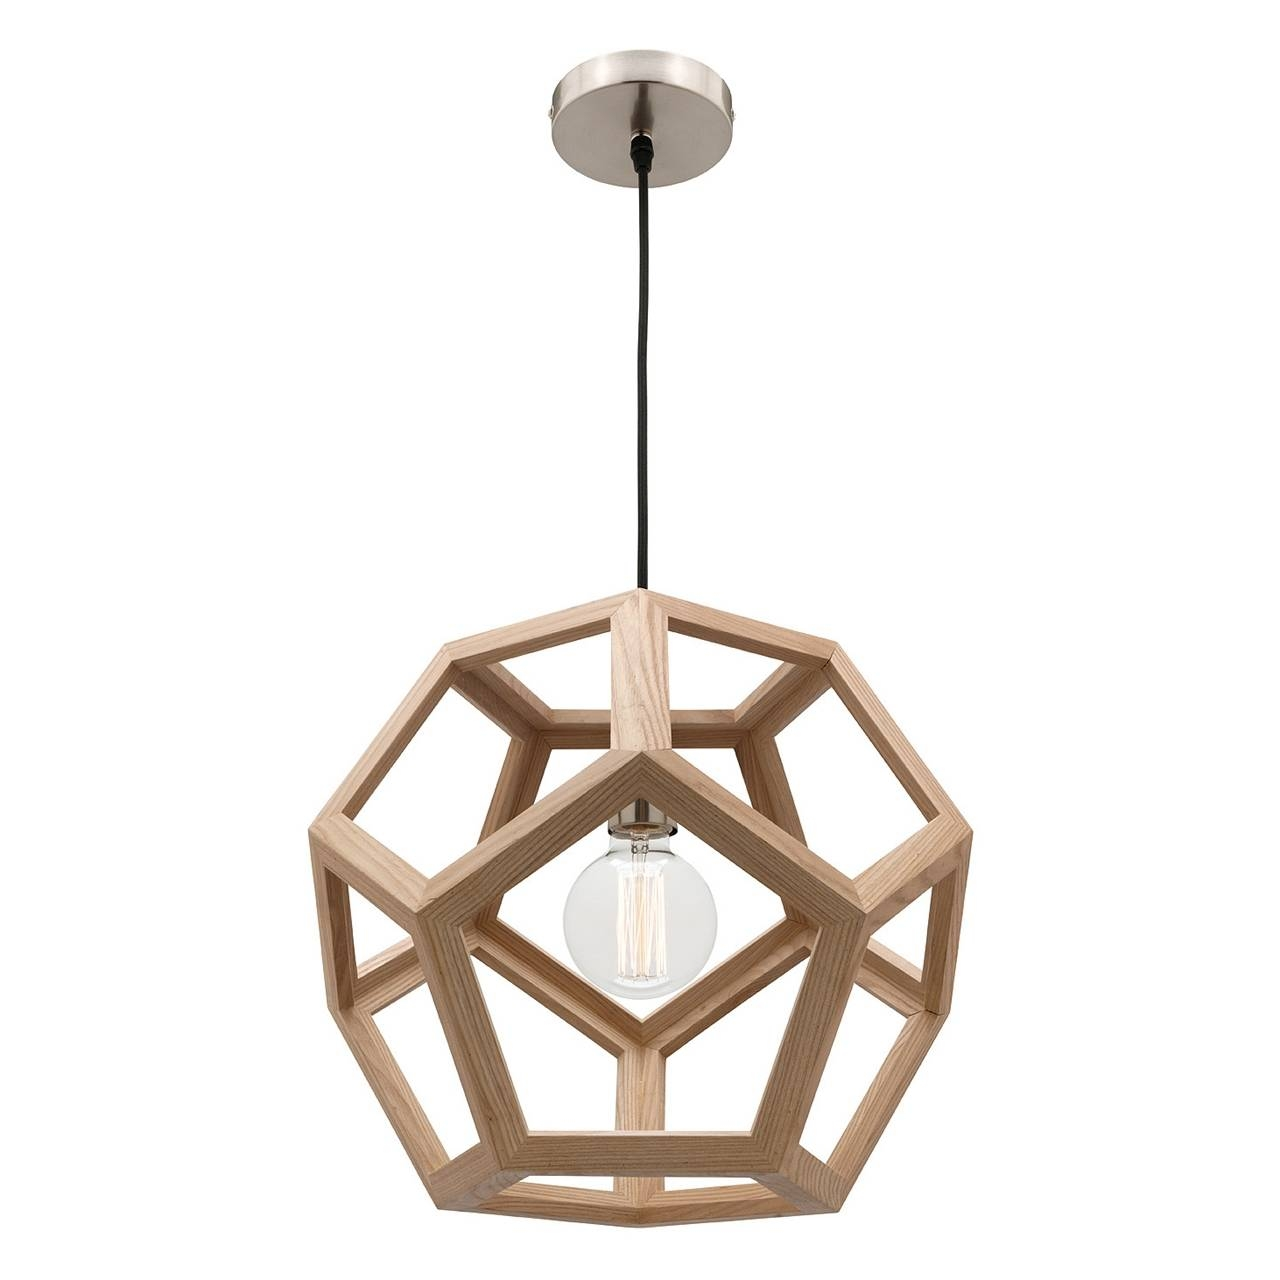 Northern Lighting Online Shop | Lighting, Outdoor Lighting, Light With Regard To Timber Pendant Lights (Photo 6 of 15)